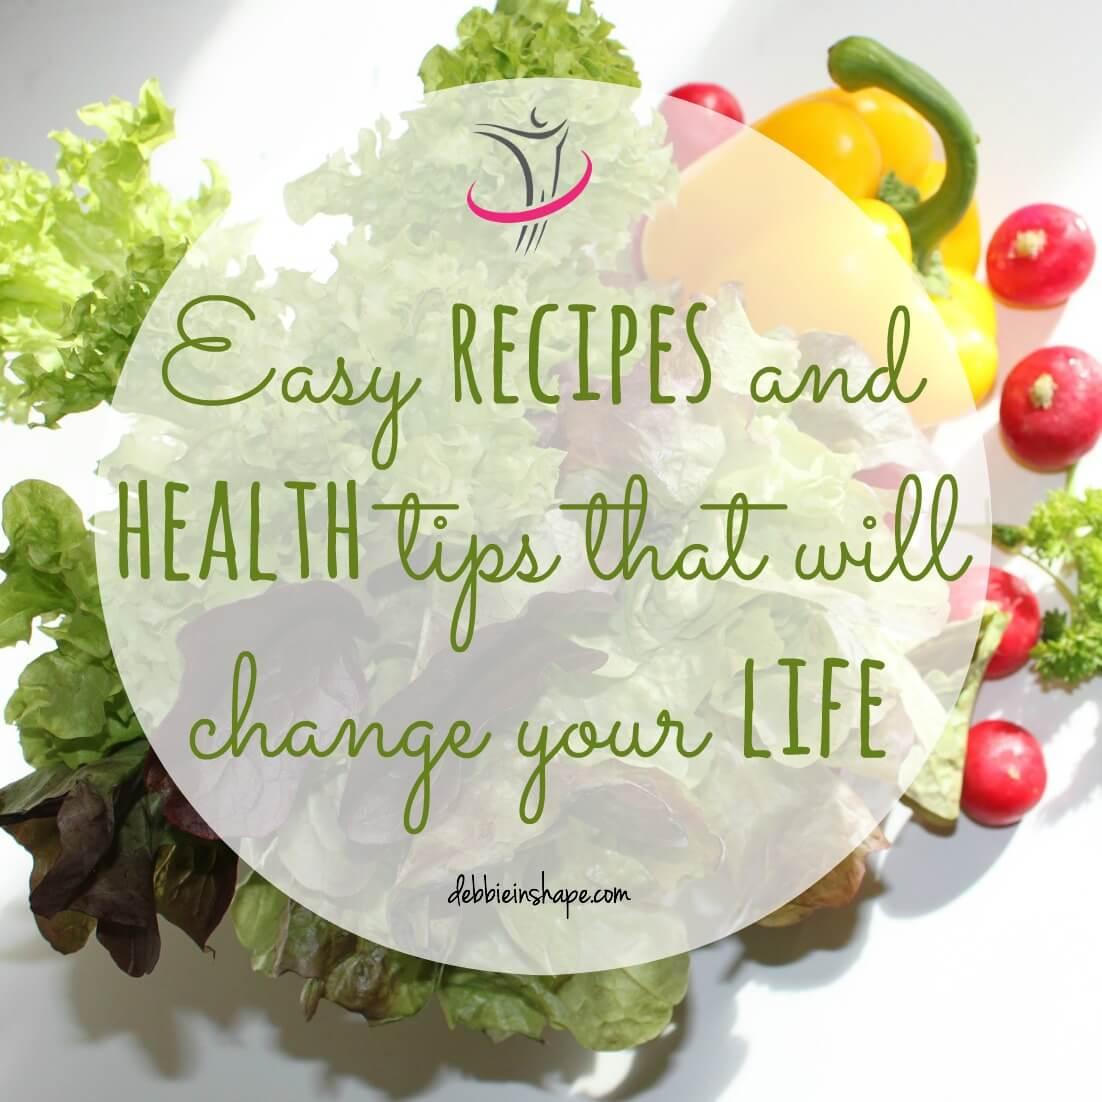 Check these easy recipes and health tips that will change your life.